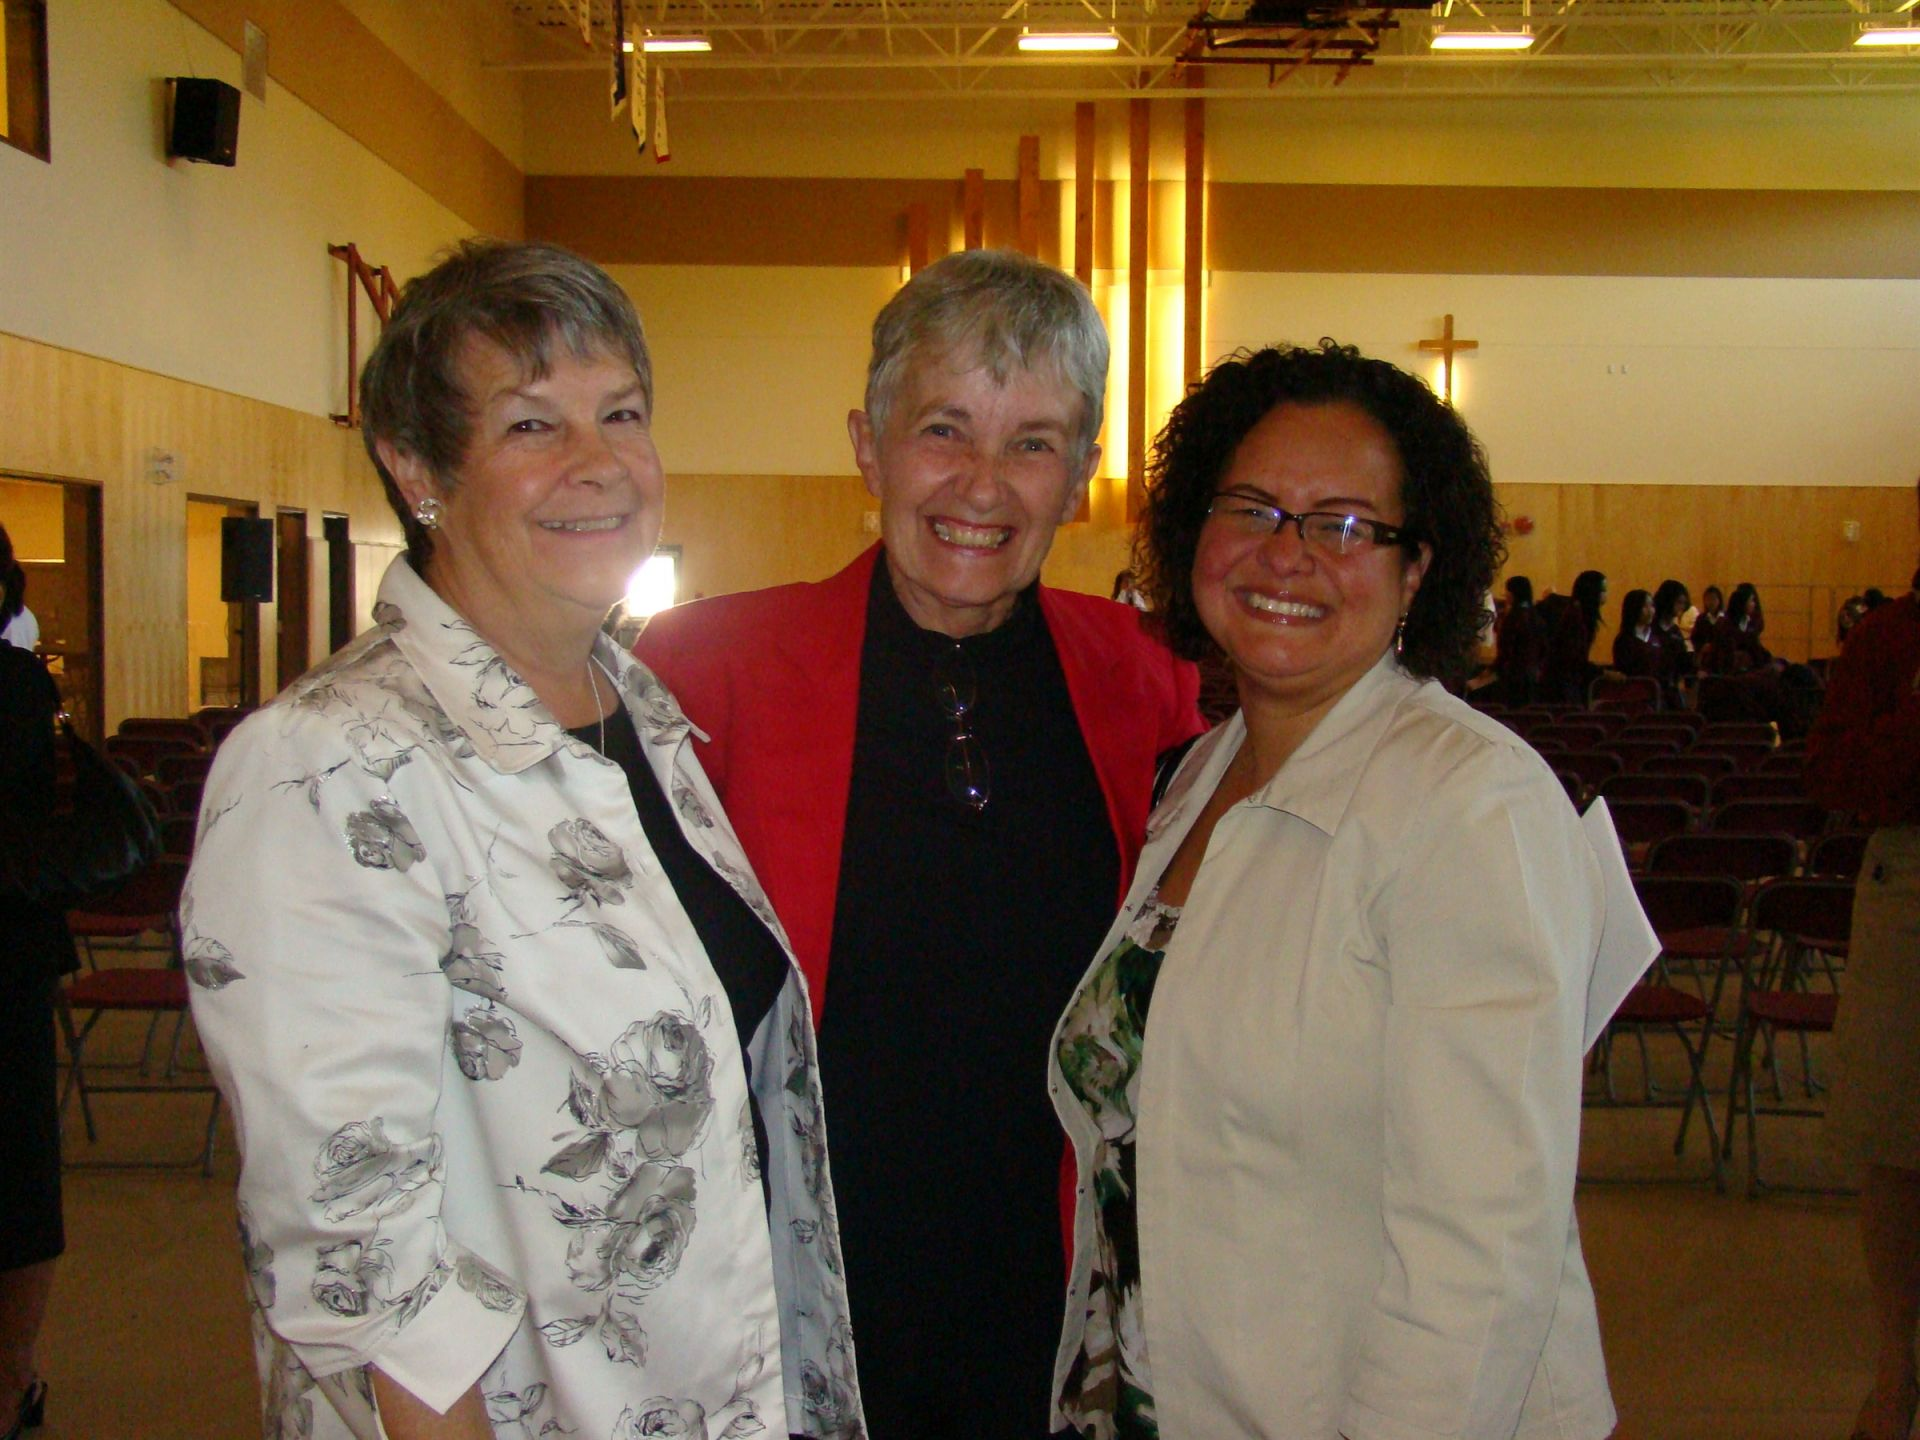 Pat, Brenda and Jacy at the Sisters of St. Ann 150 year celebration in 2008